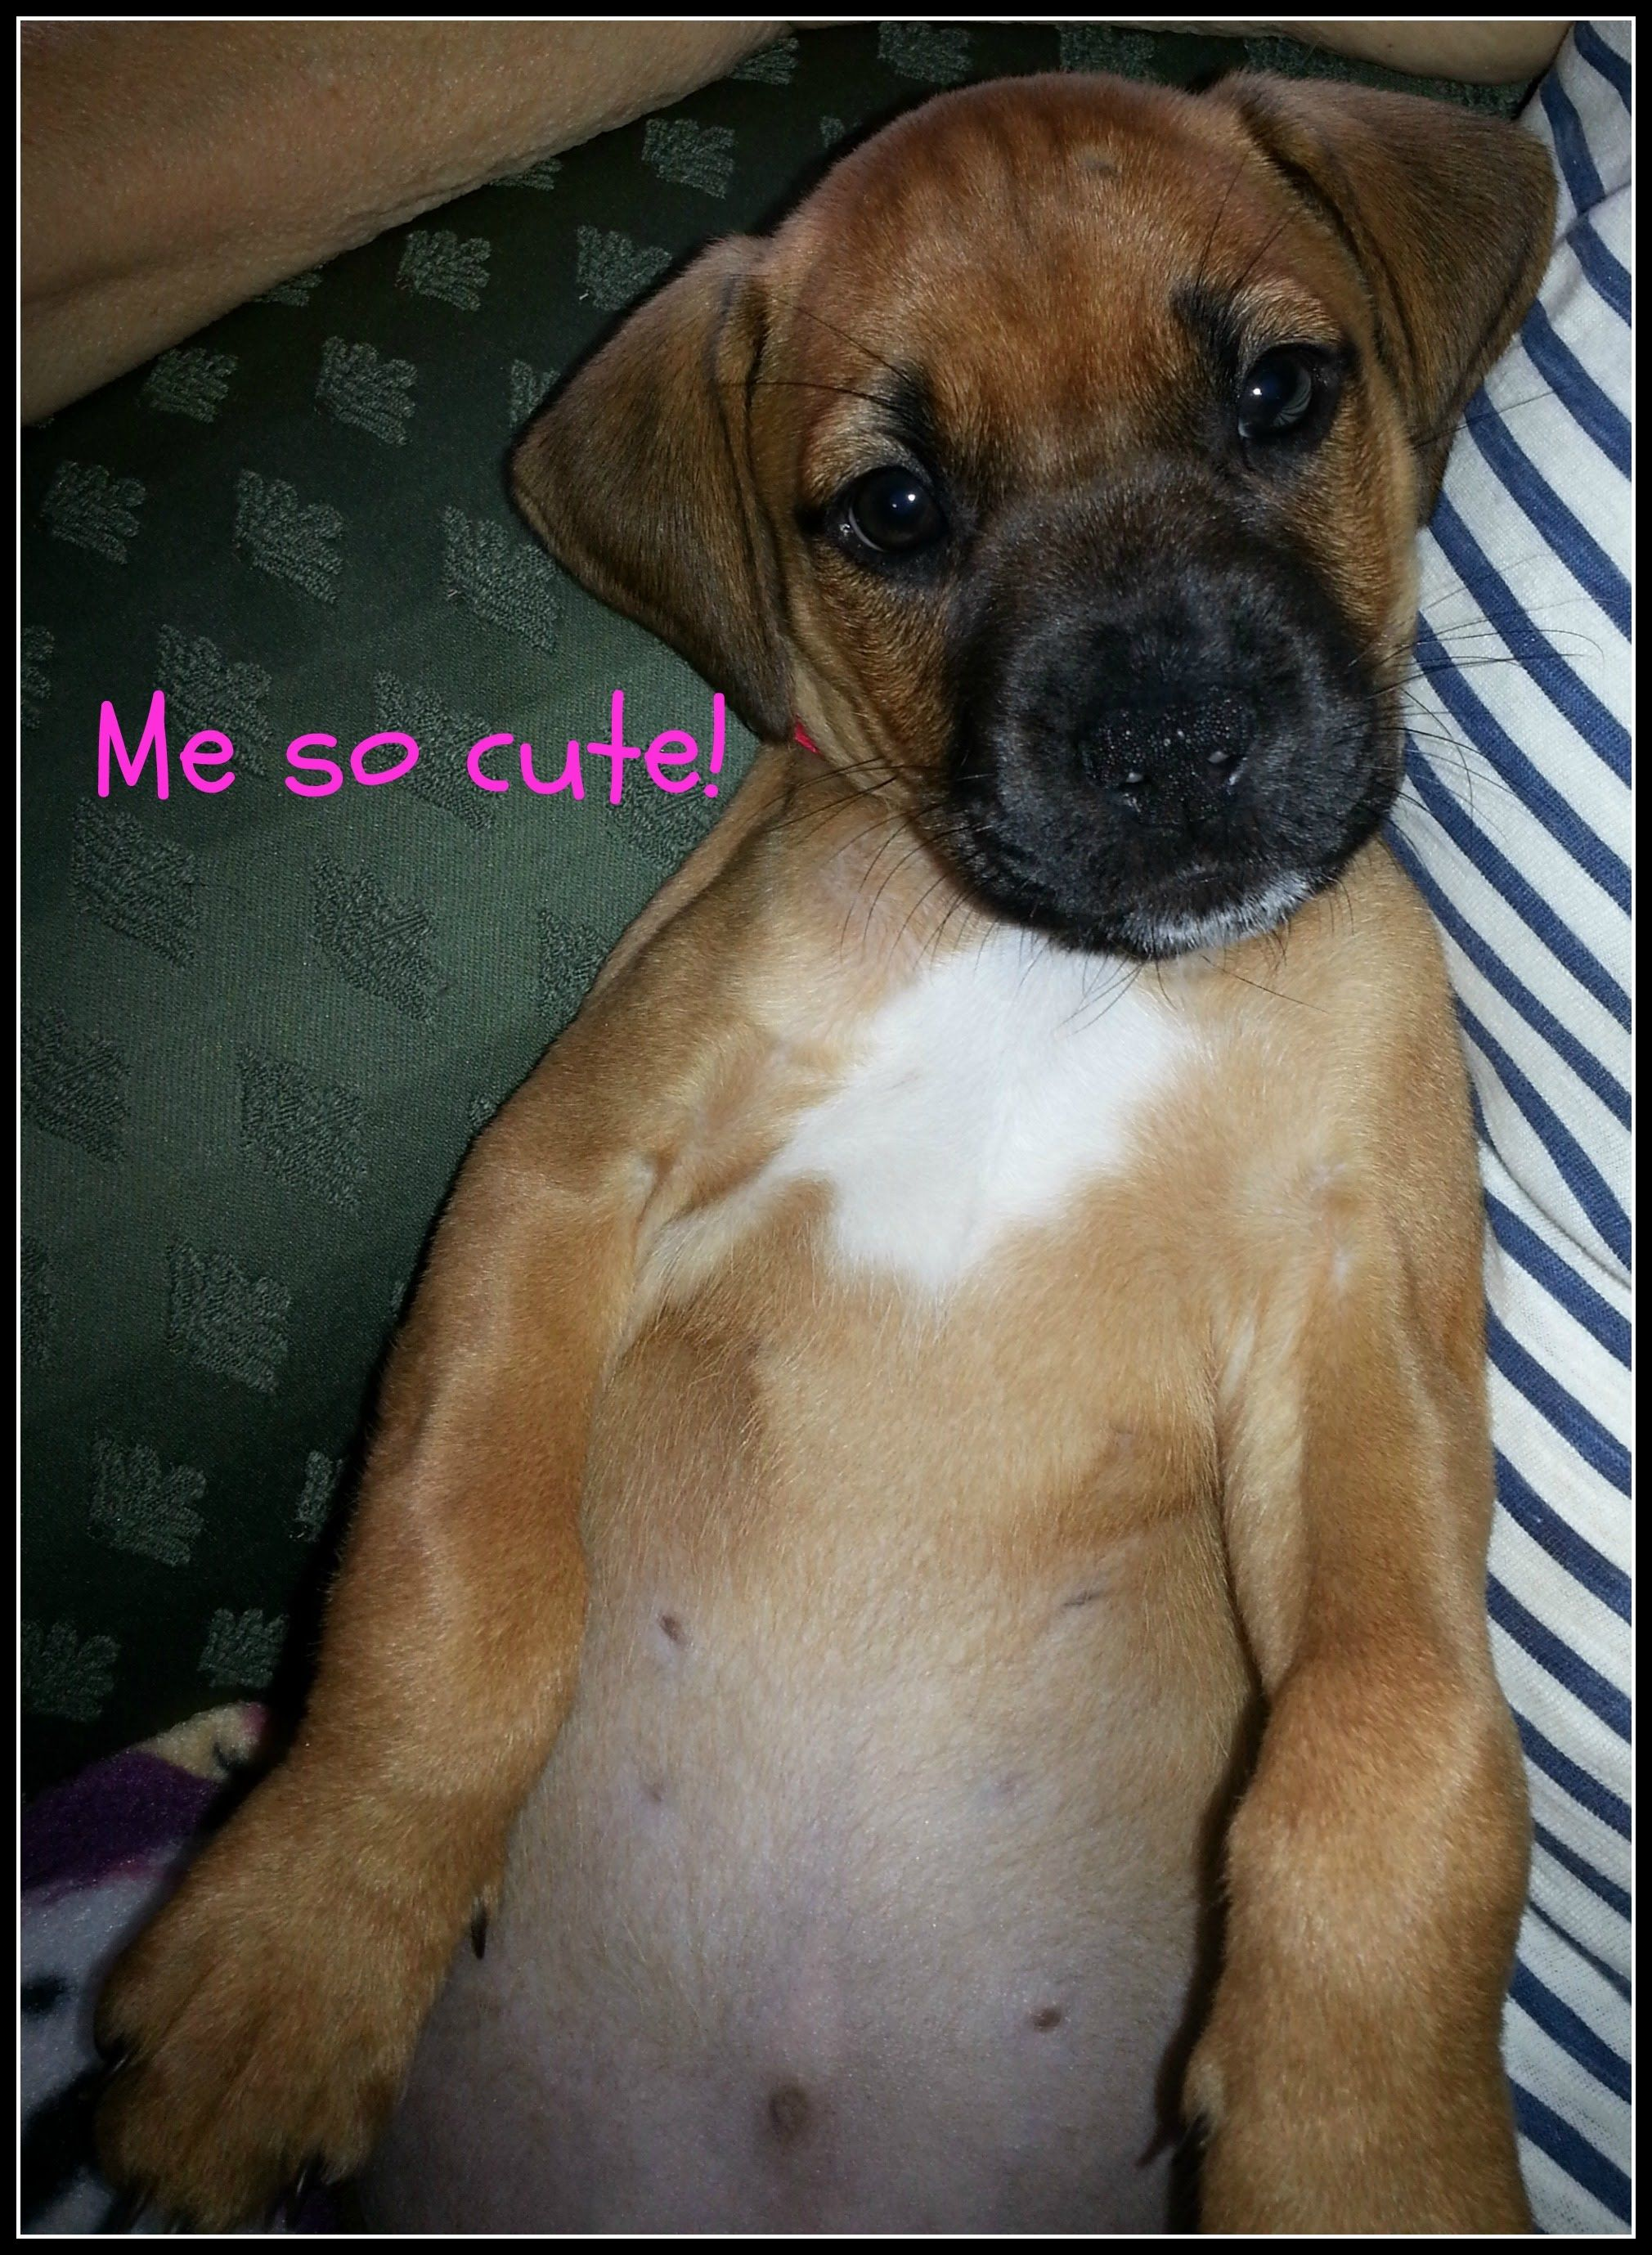 Meet Maxie 8 Week Old 6 Lb Pitbull Mix Puppy Pitbulls Pitbull Mix Pitbull Mix Puppies